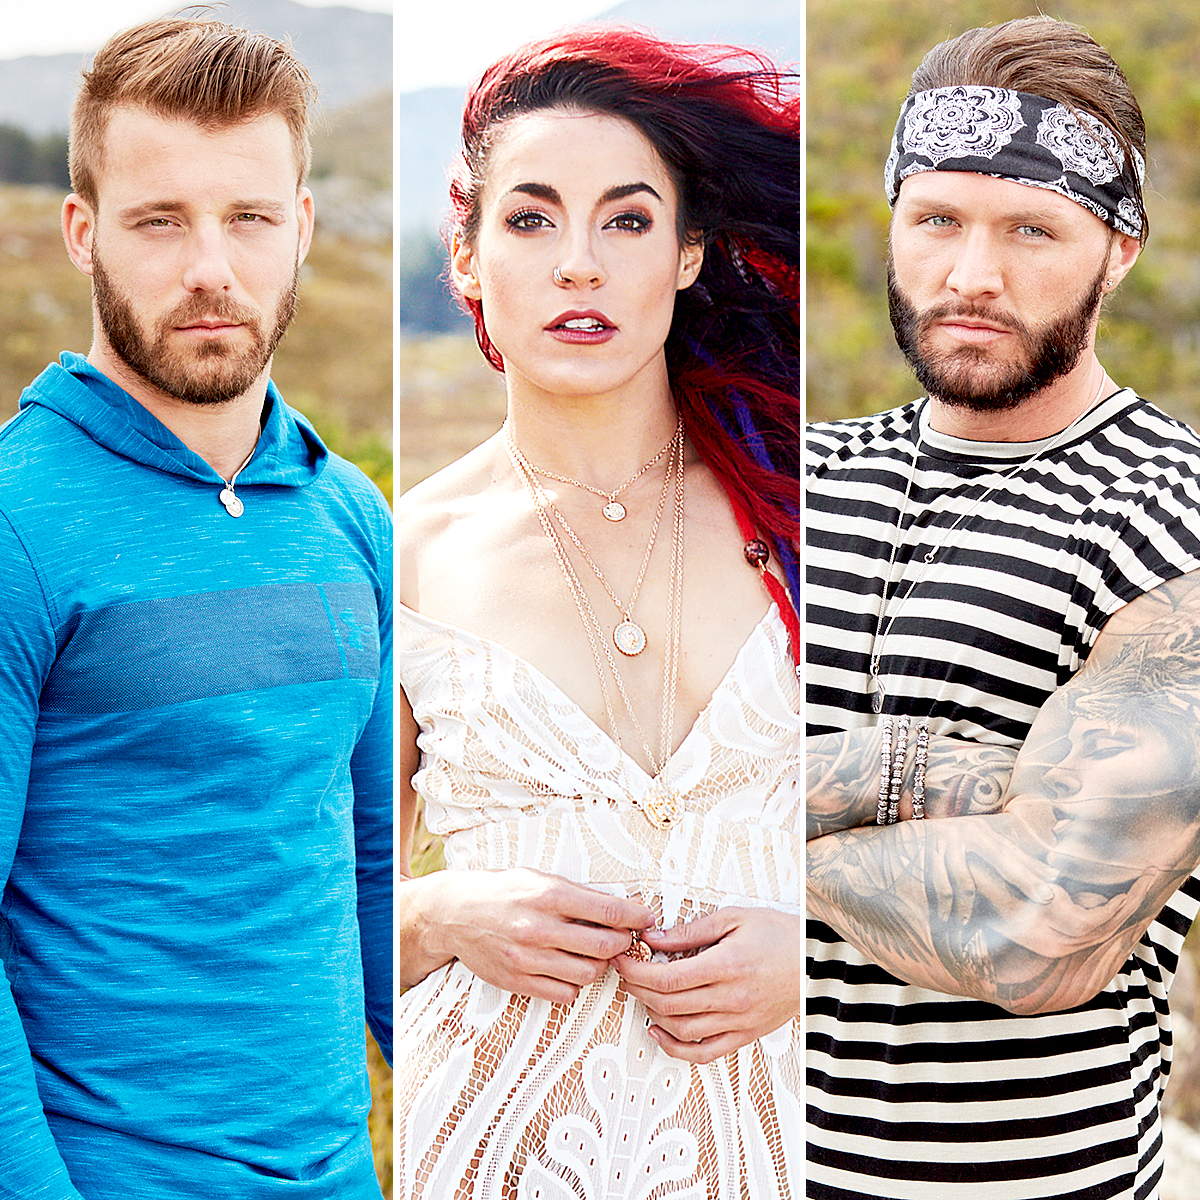 Who did cara maria hook up with on the challenge